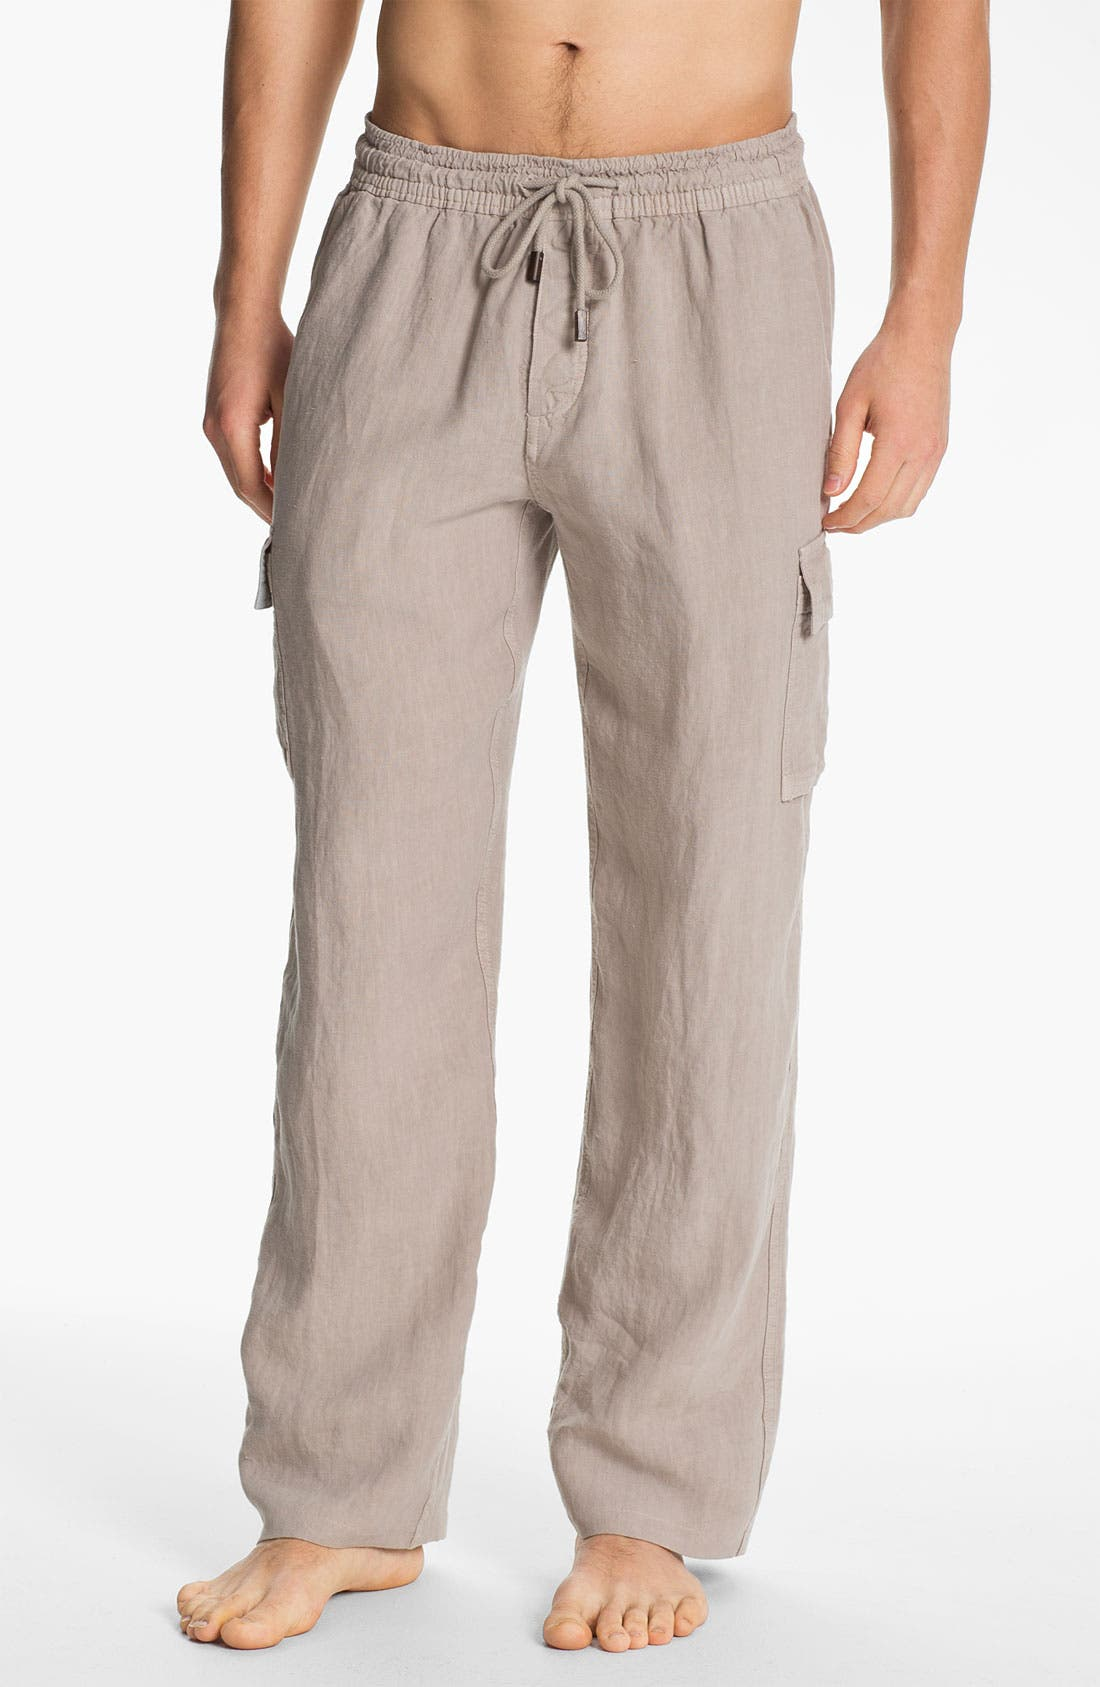 Alternate Image 1 Selected - Vilebrequin 'Ponant' Linen Cargo Pants